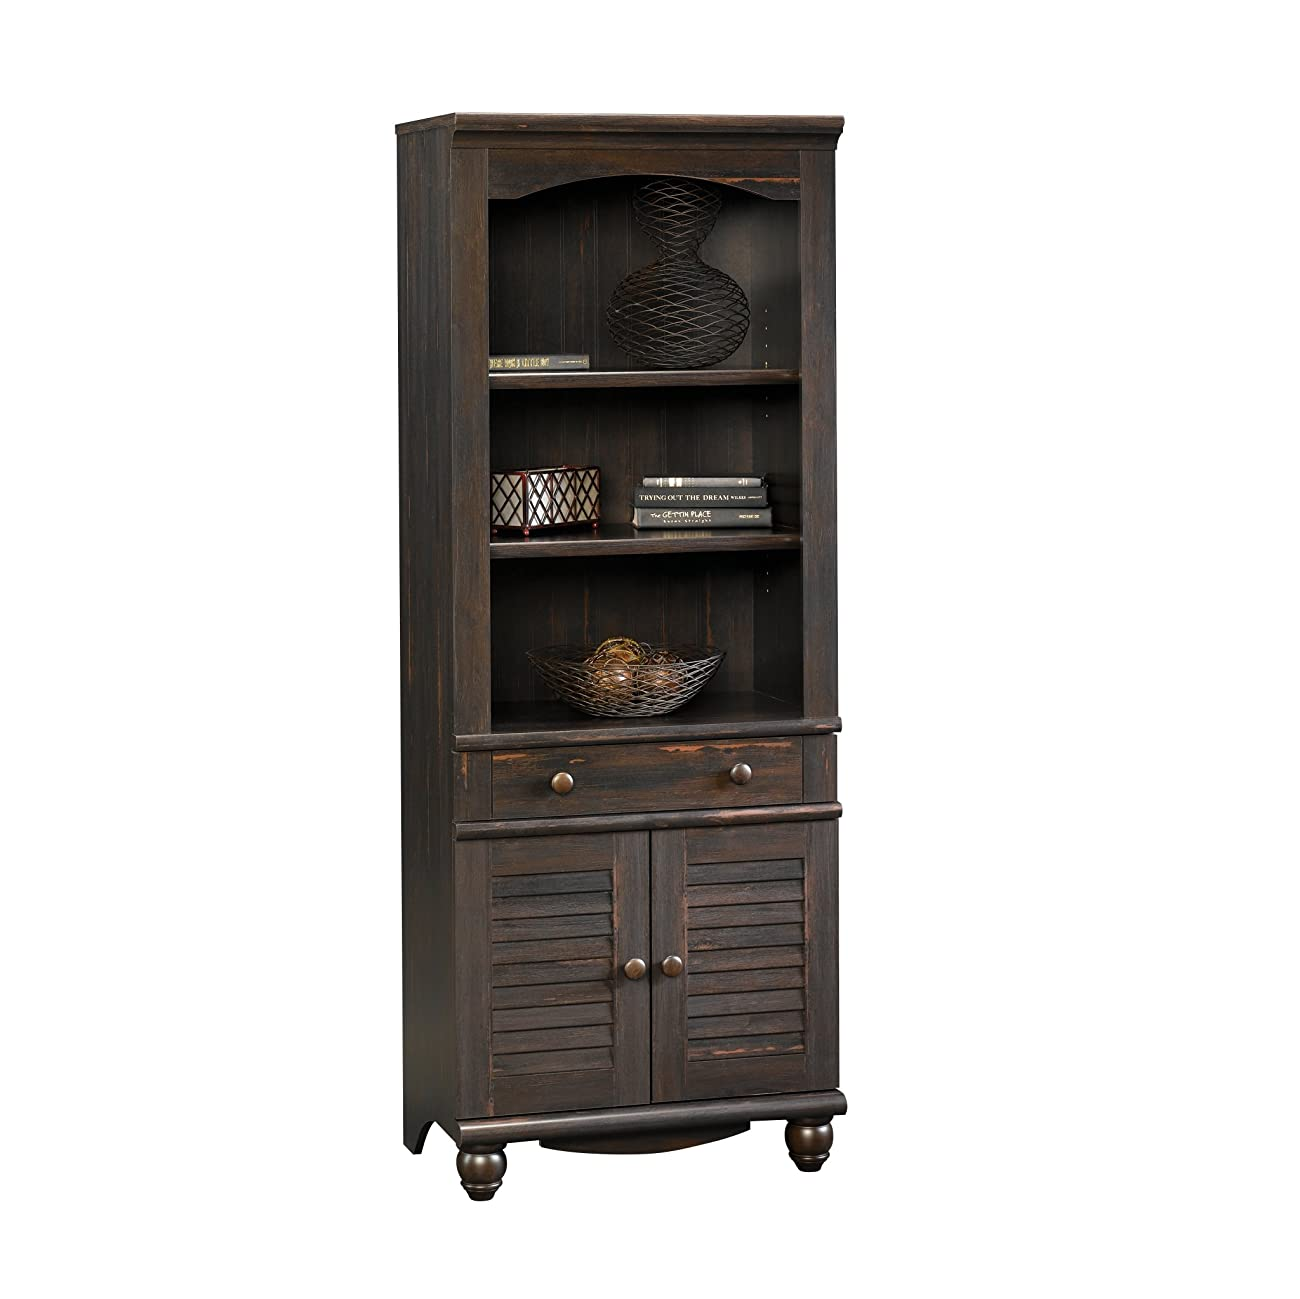 Sauder Harbor View Library with Doors Antiqued Paint 0